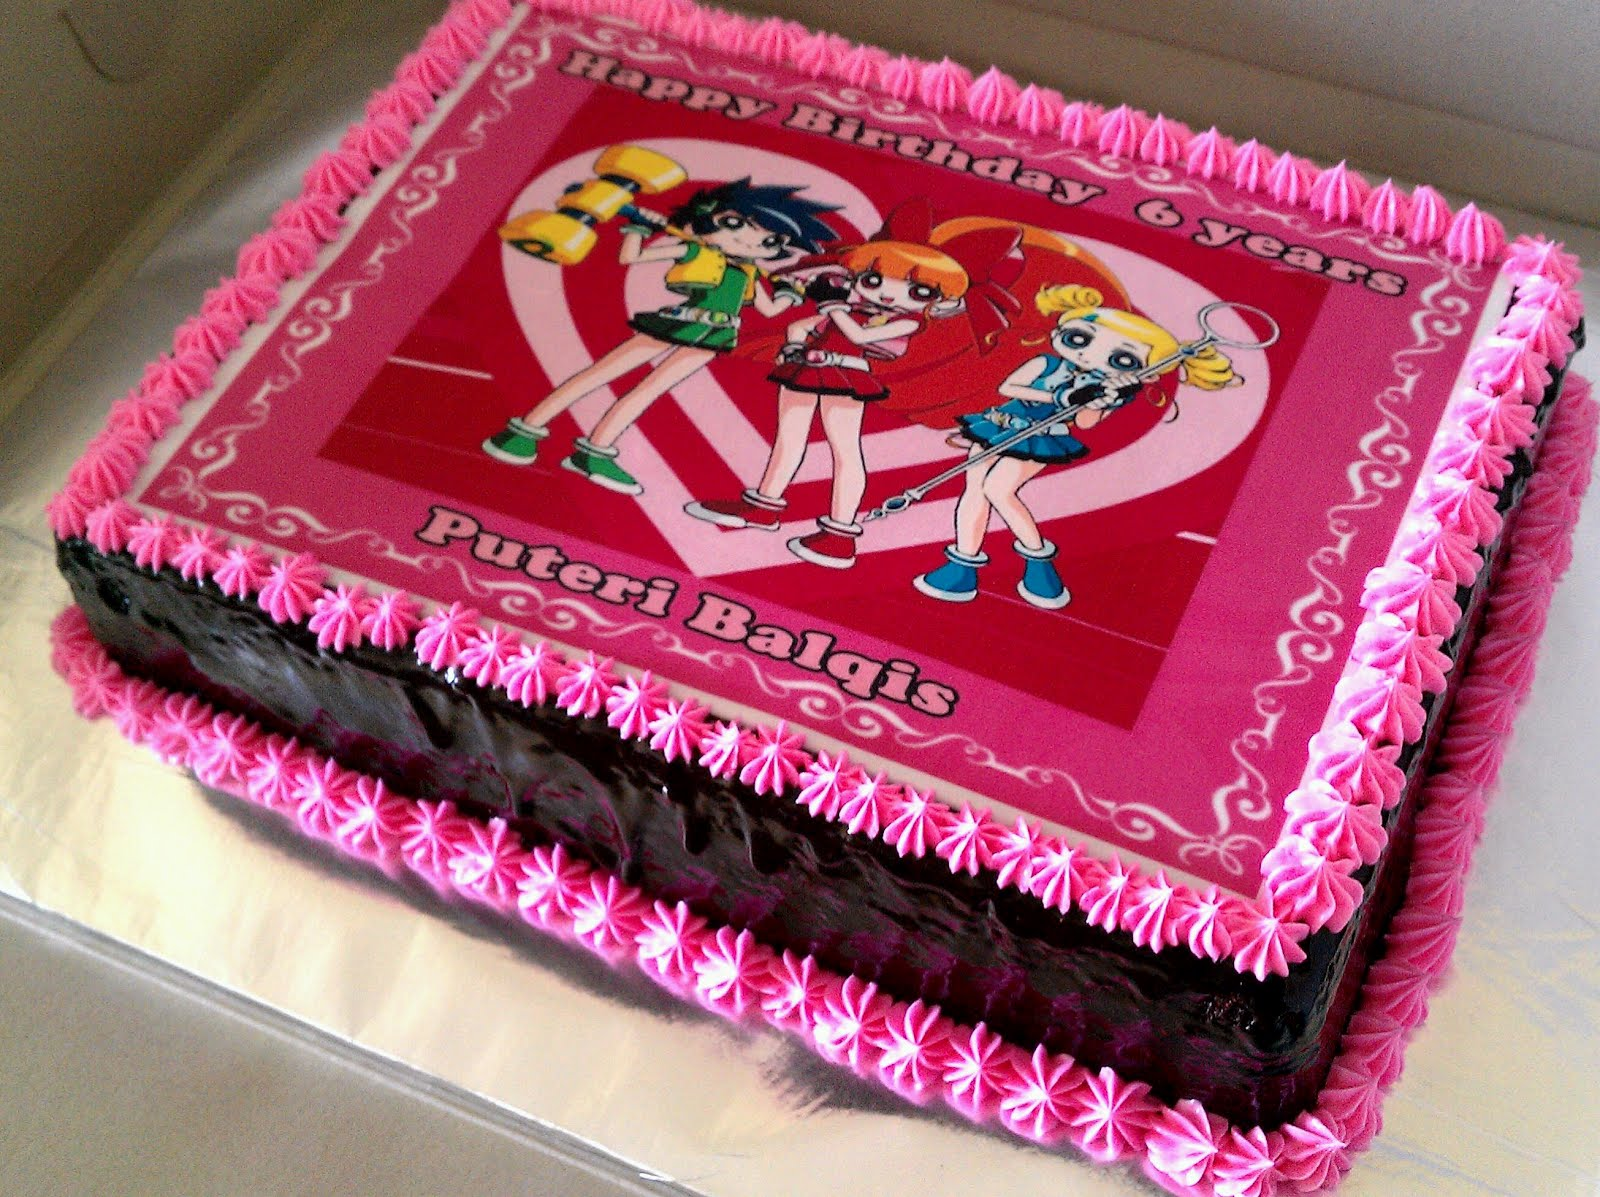 Zairie Homemade Delights Power puff Cake